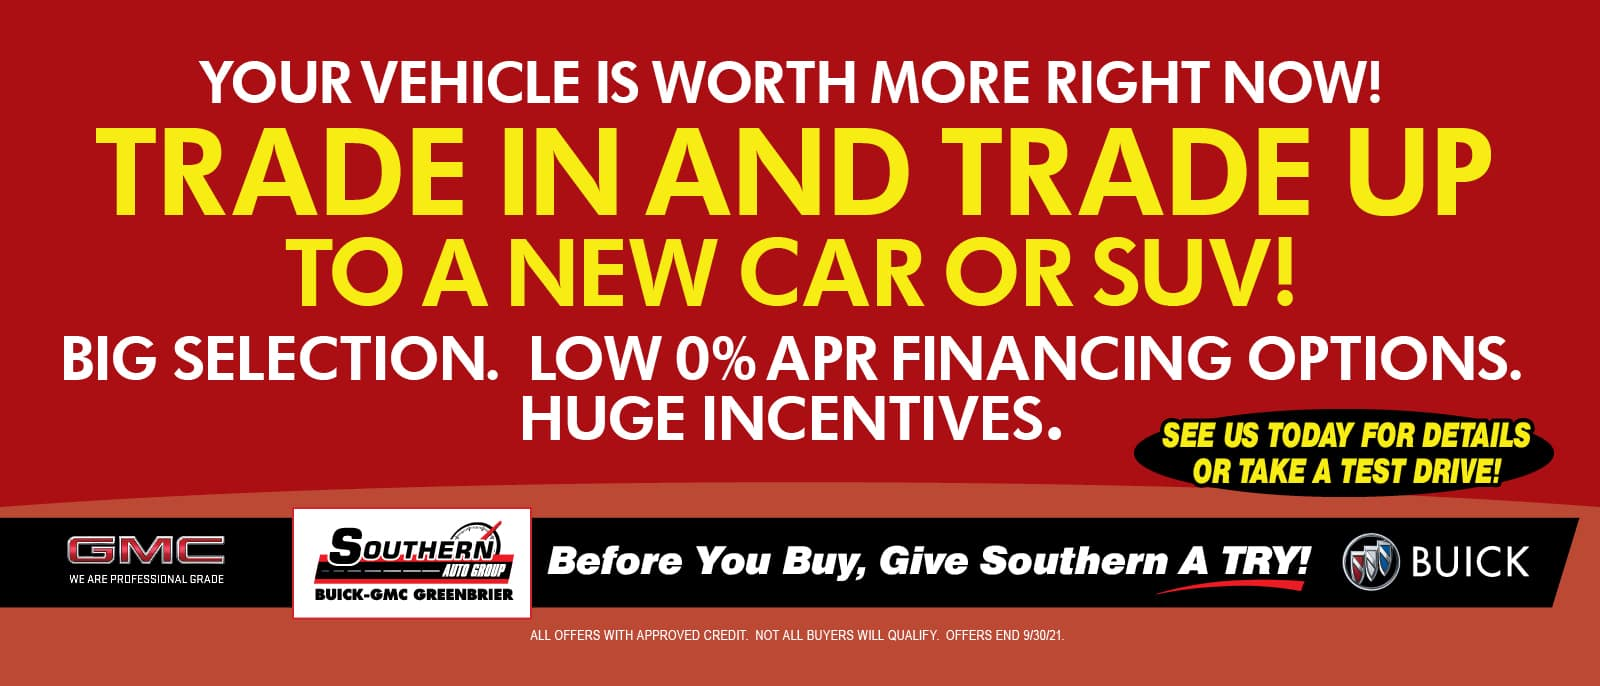 Trade Worth More – Greenbrier Buick GMC